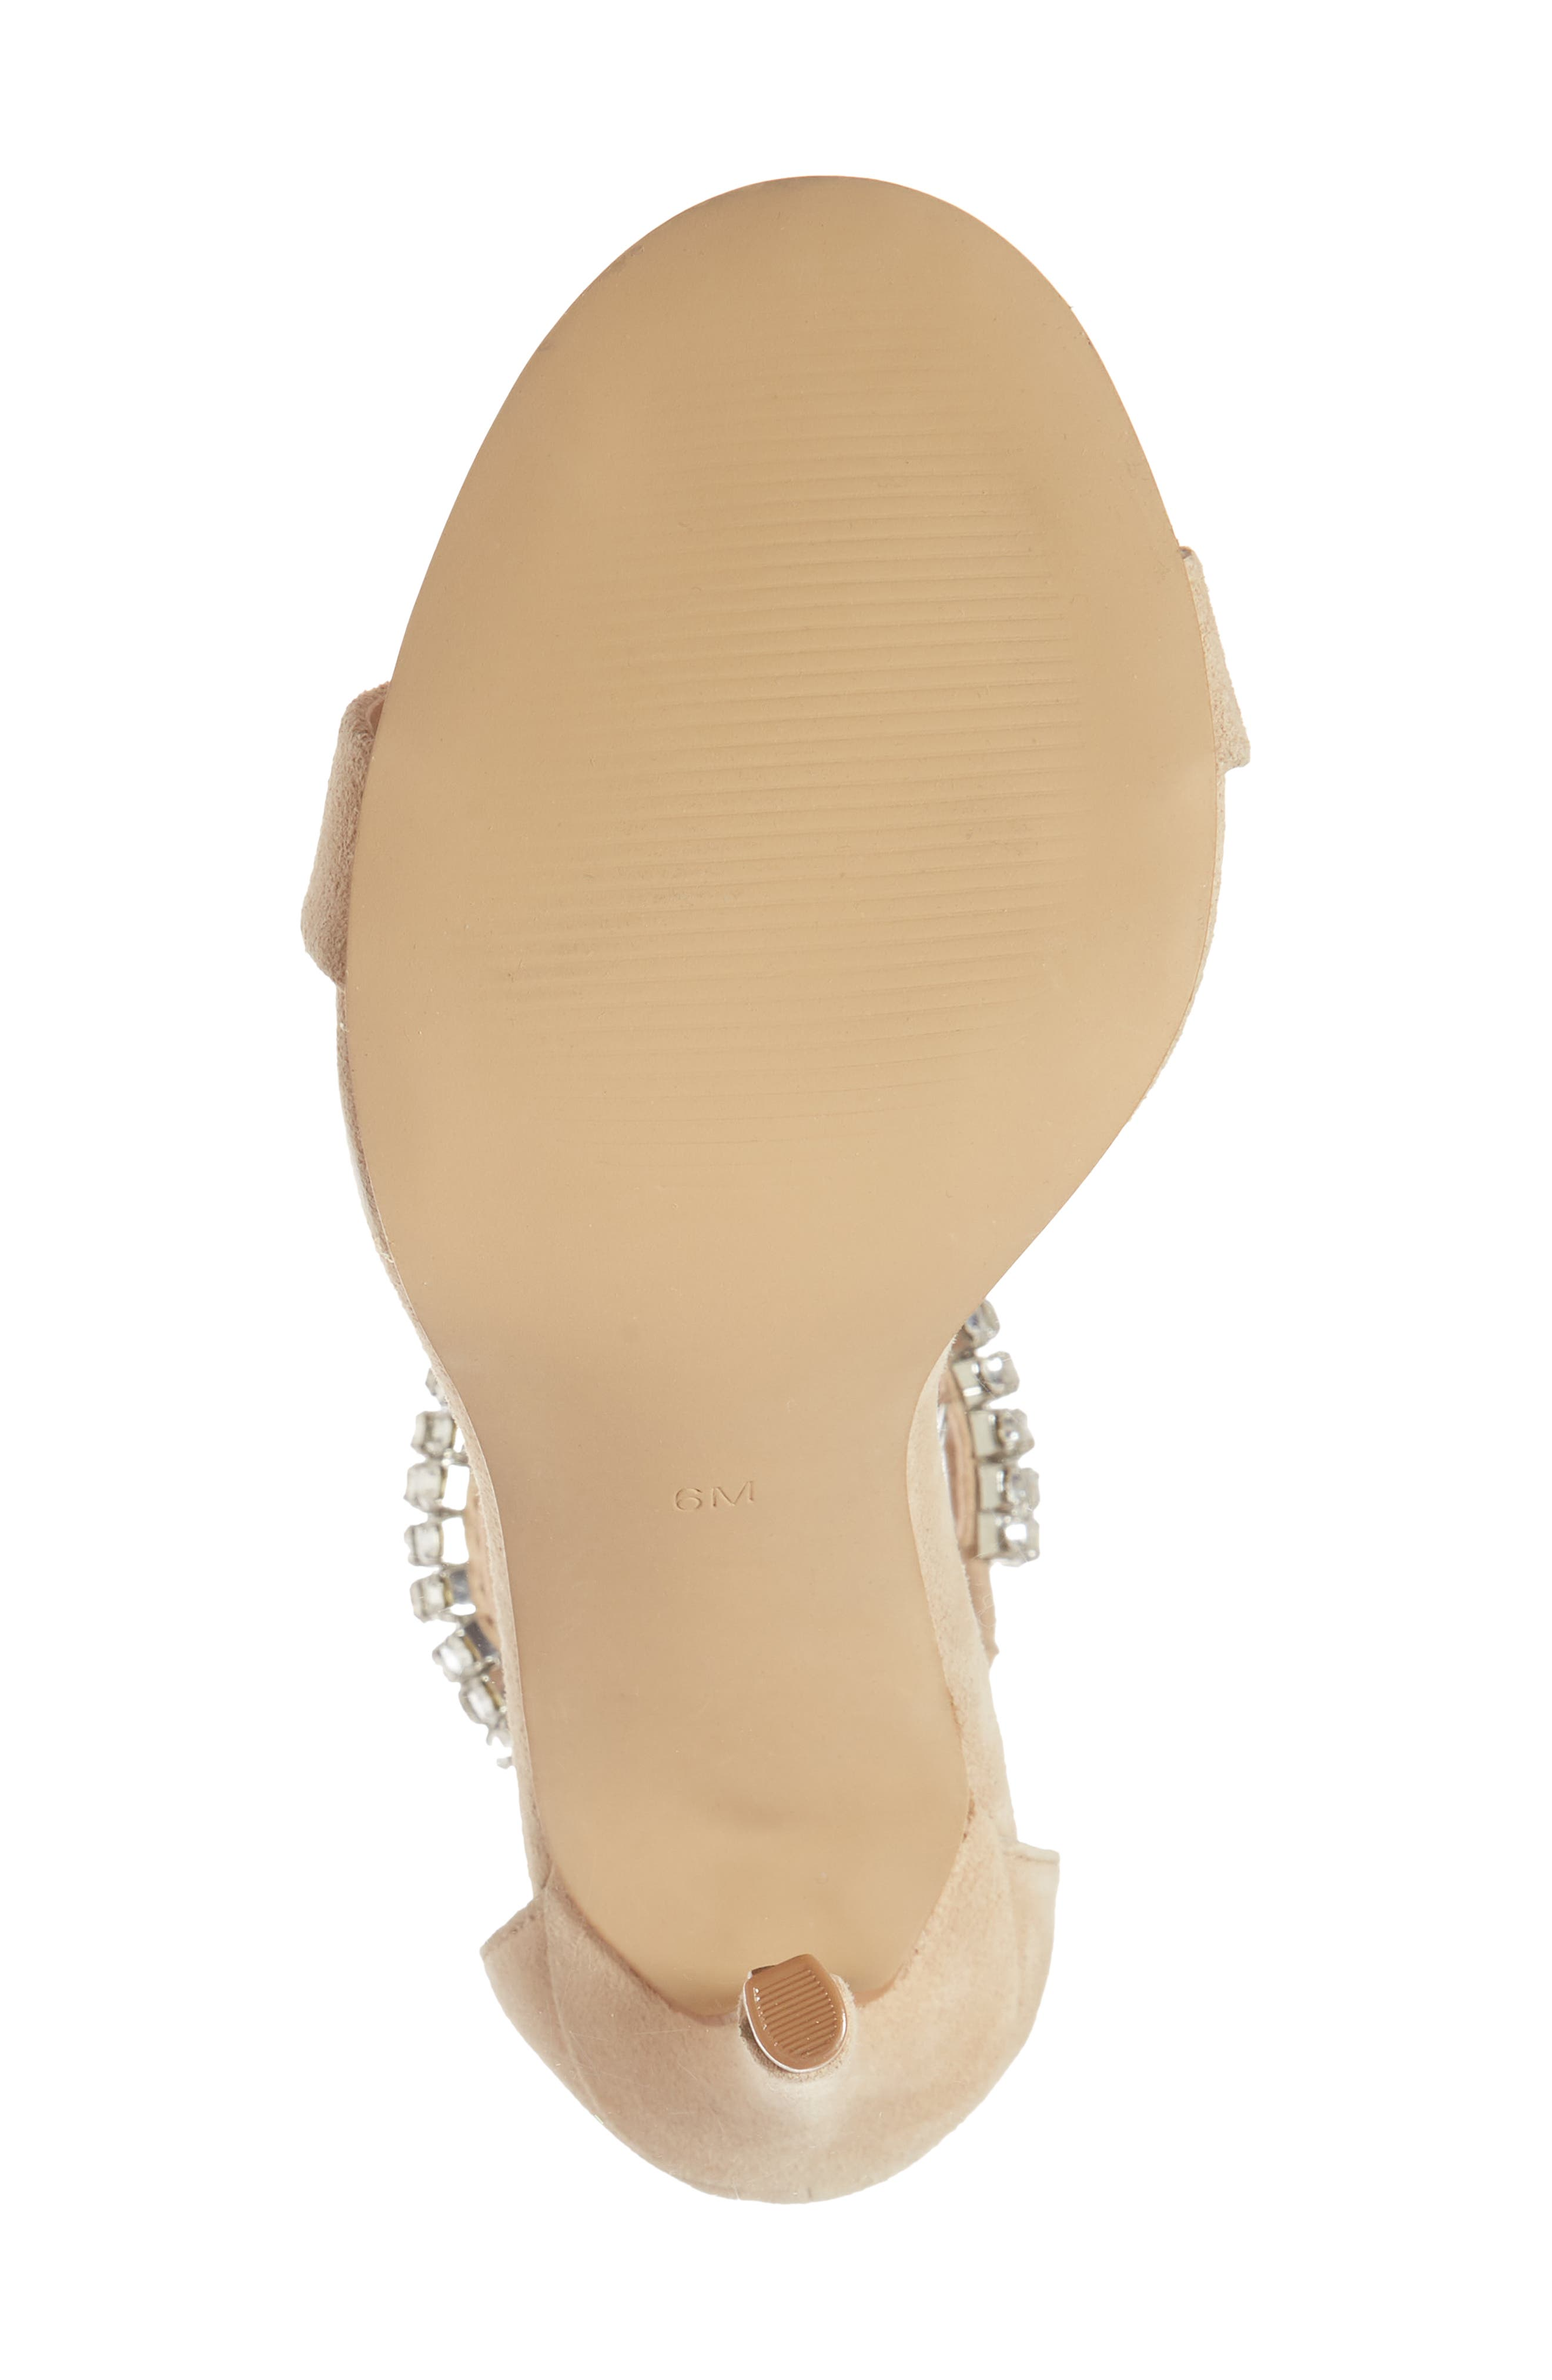 Rando Crystal Sandal,                             Alternate thumbnail 6, color,                             Natural Suede